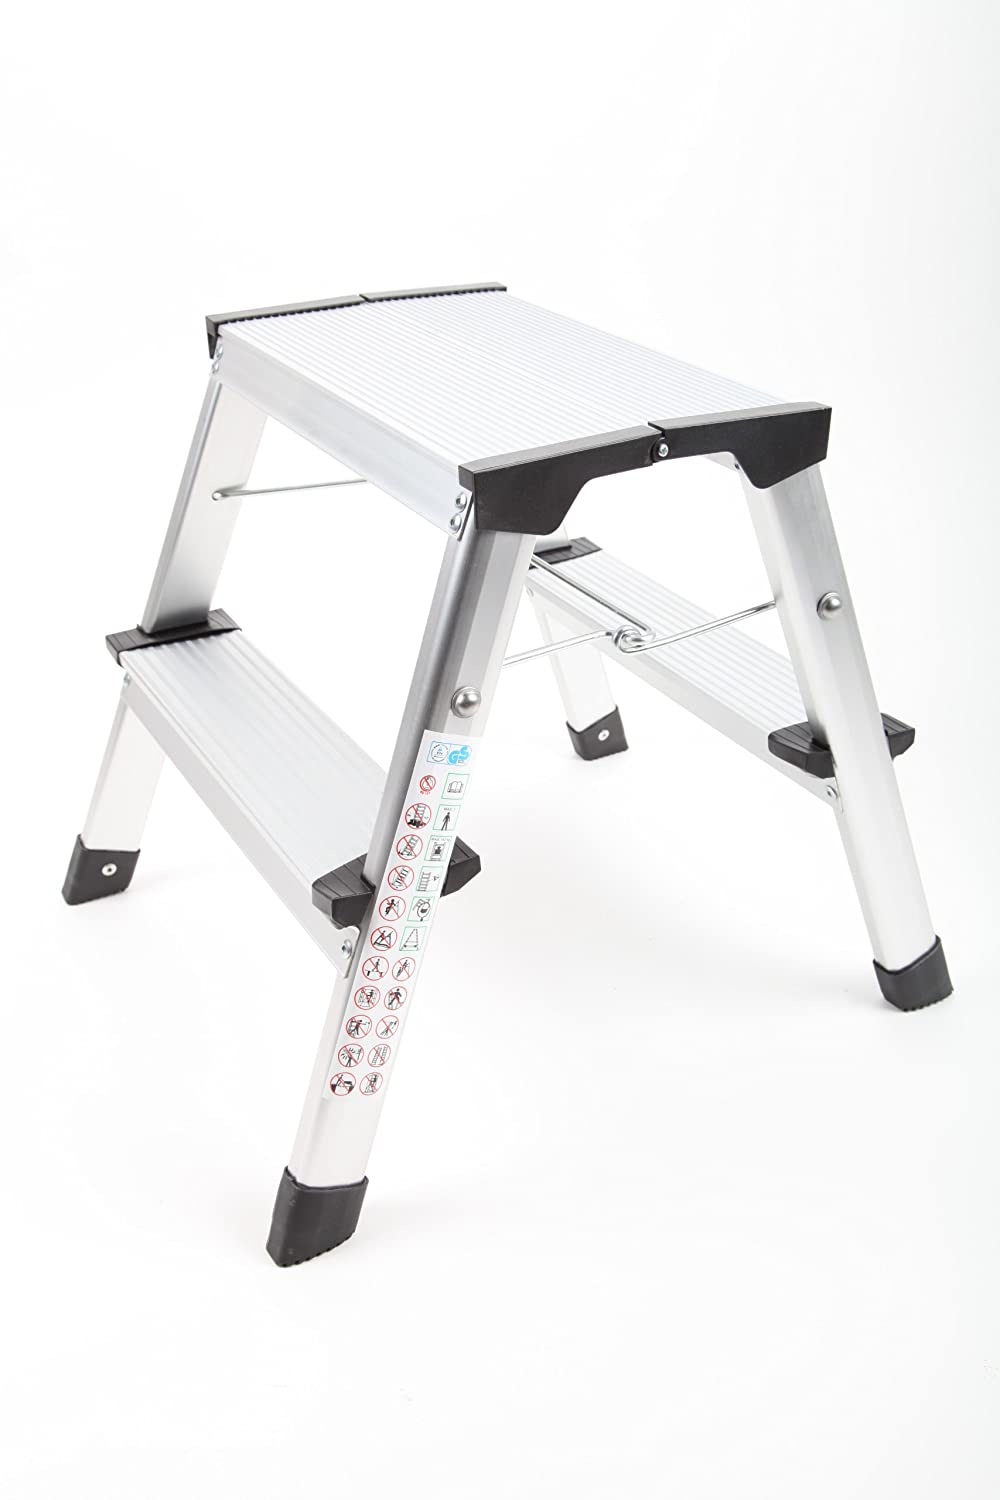 point-home Folding Step Stool 2 Steps Aluminium